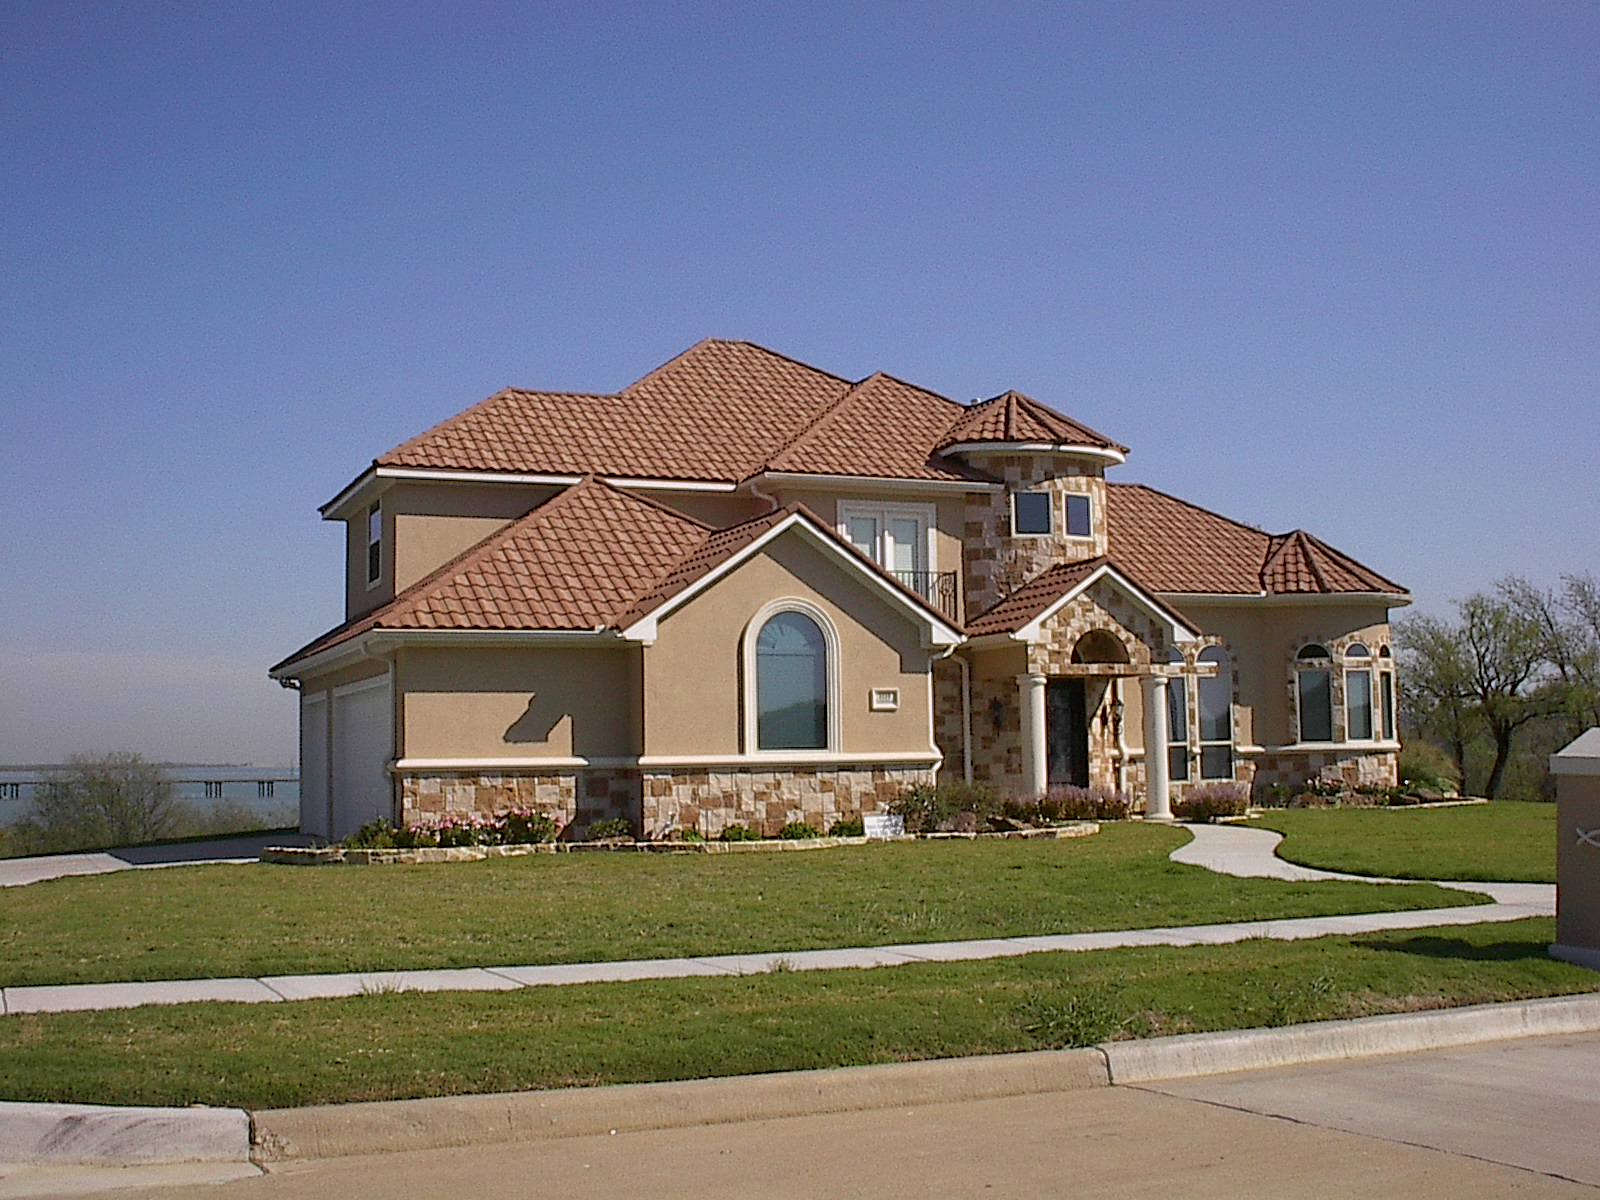 Are Tile Shingles Right For Your Home? - Image 3